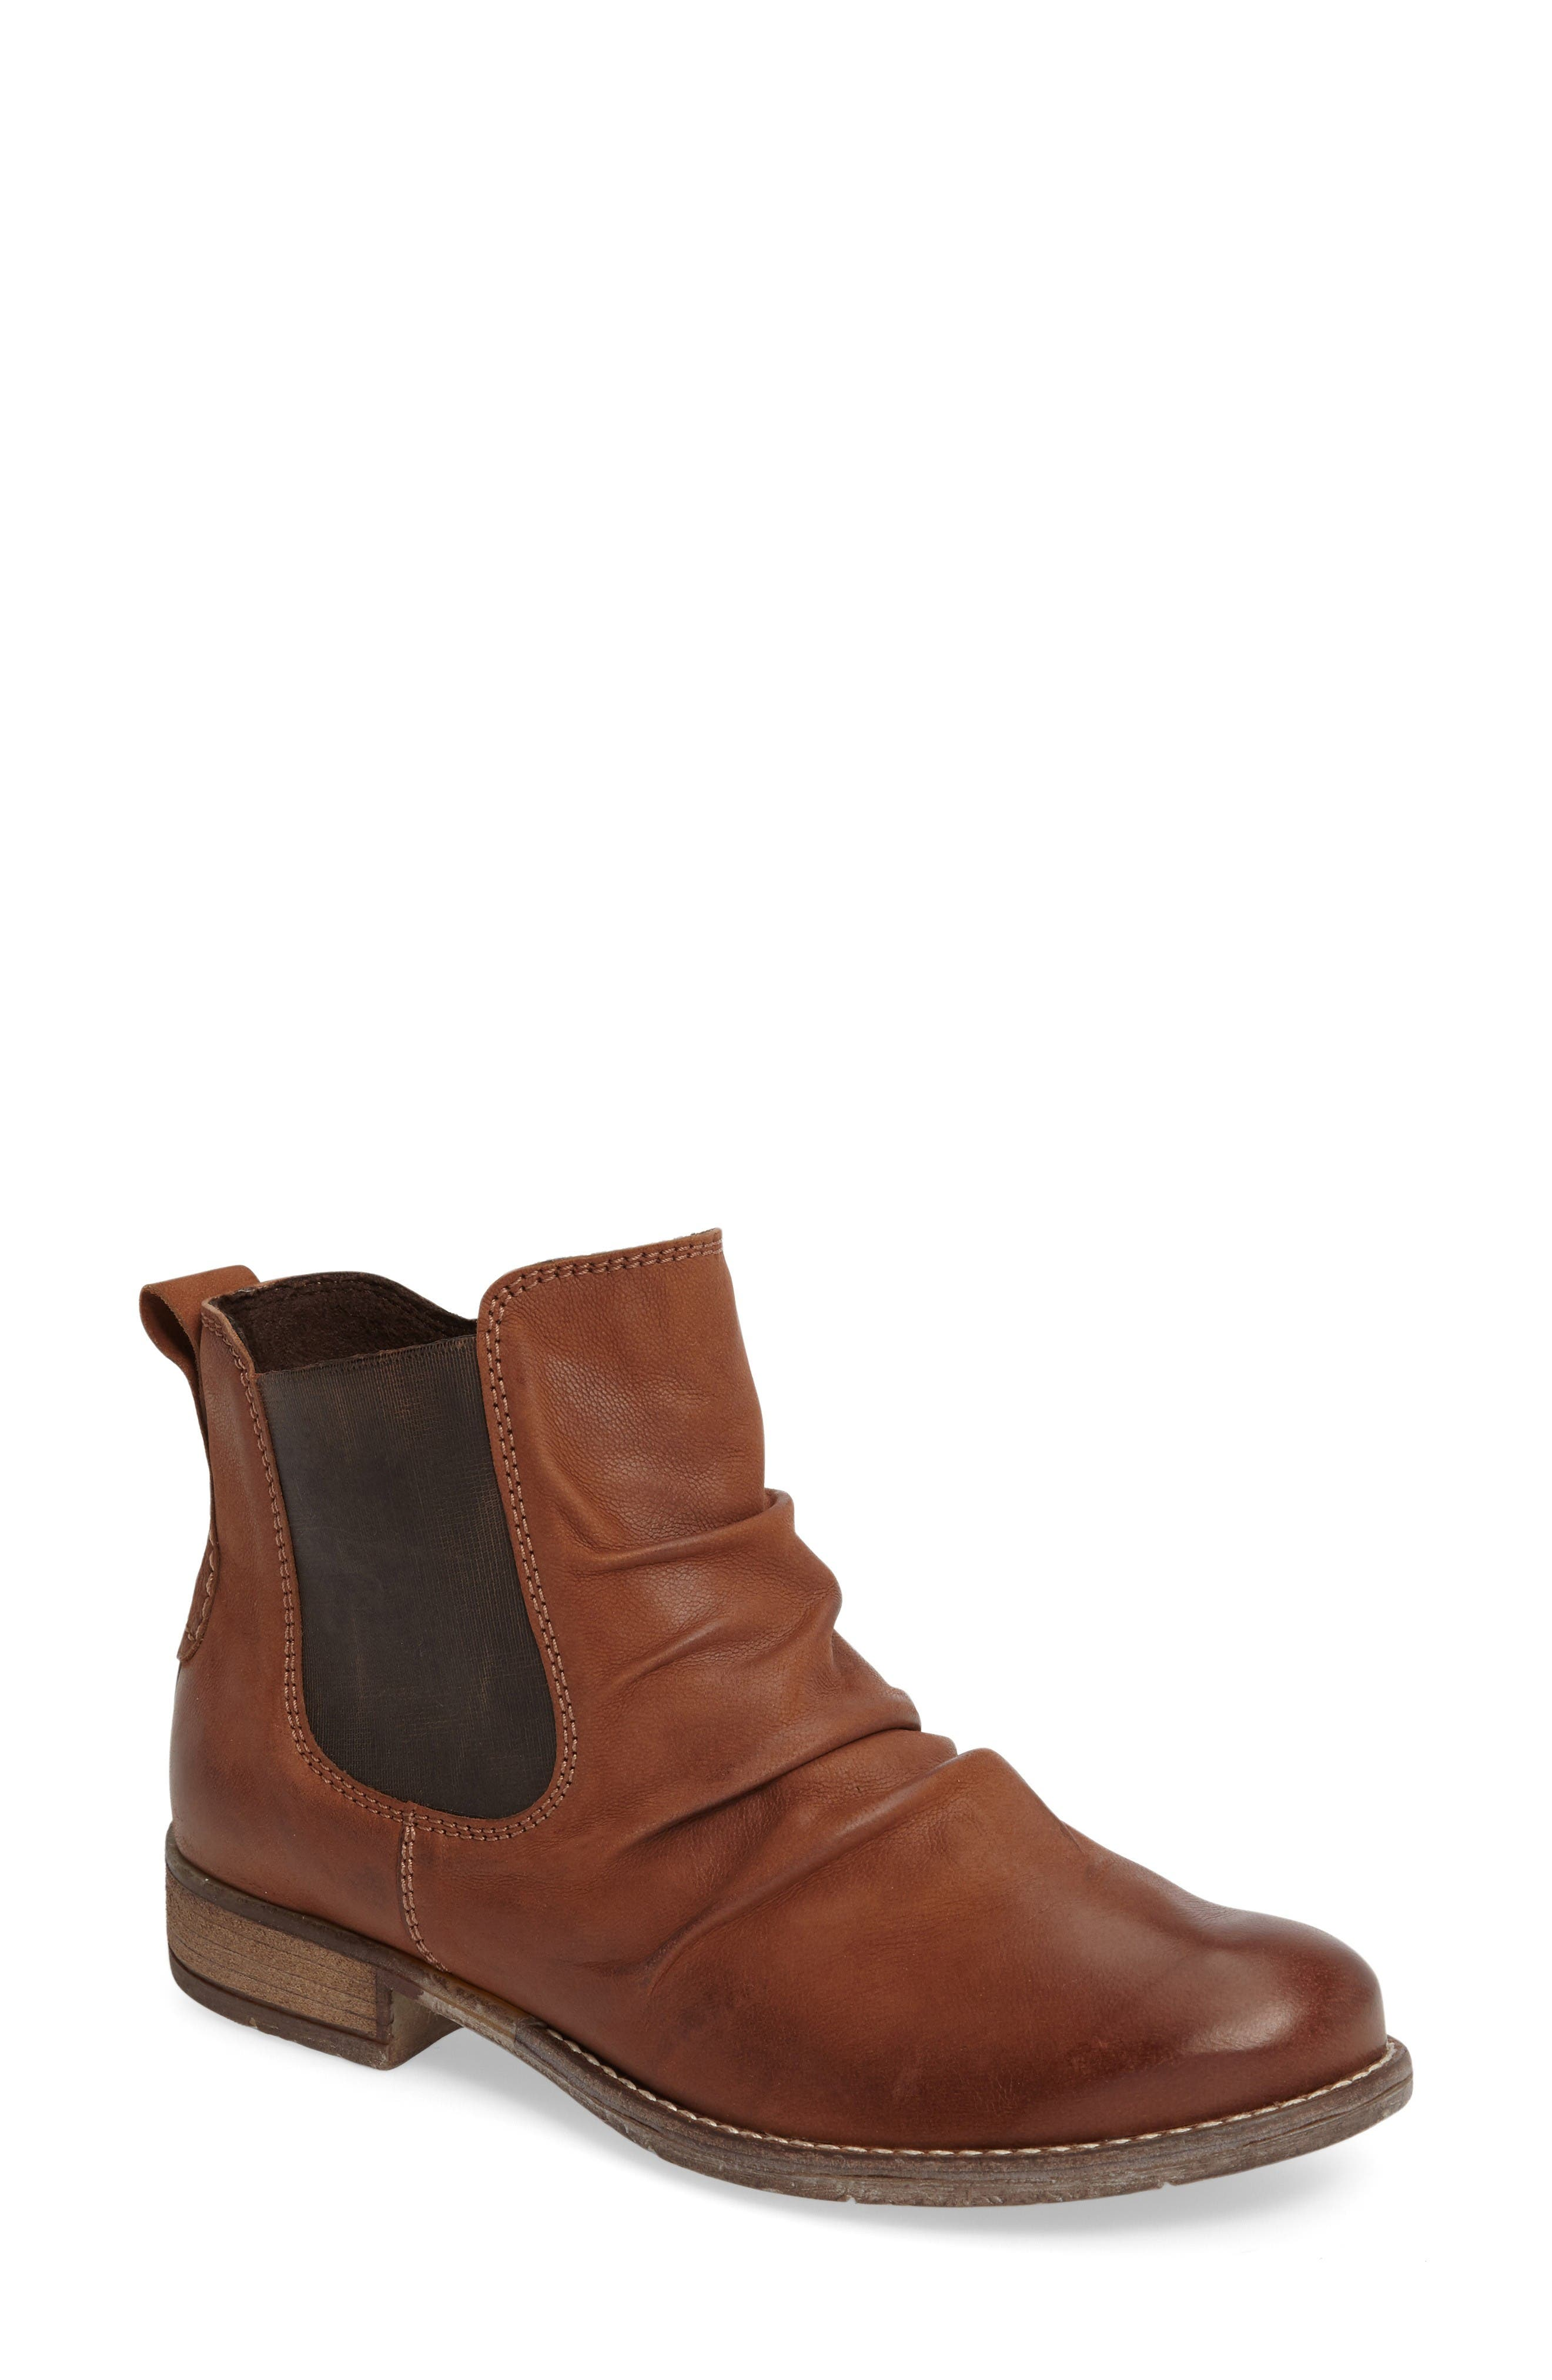 Sienna 59 Slouchy Chelsea Bootie,                         Main,                         color, Castagne Leather